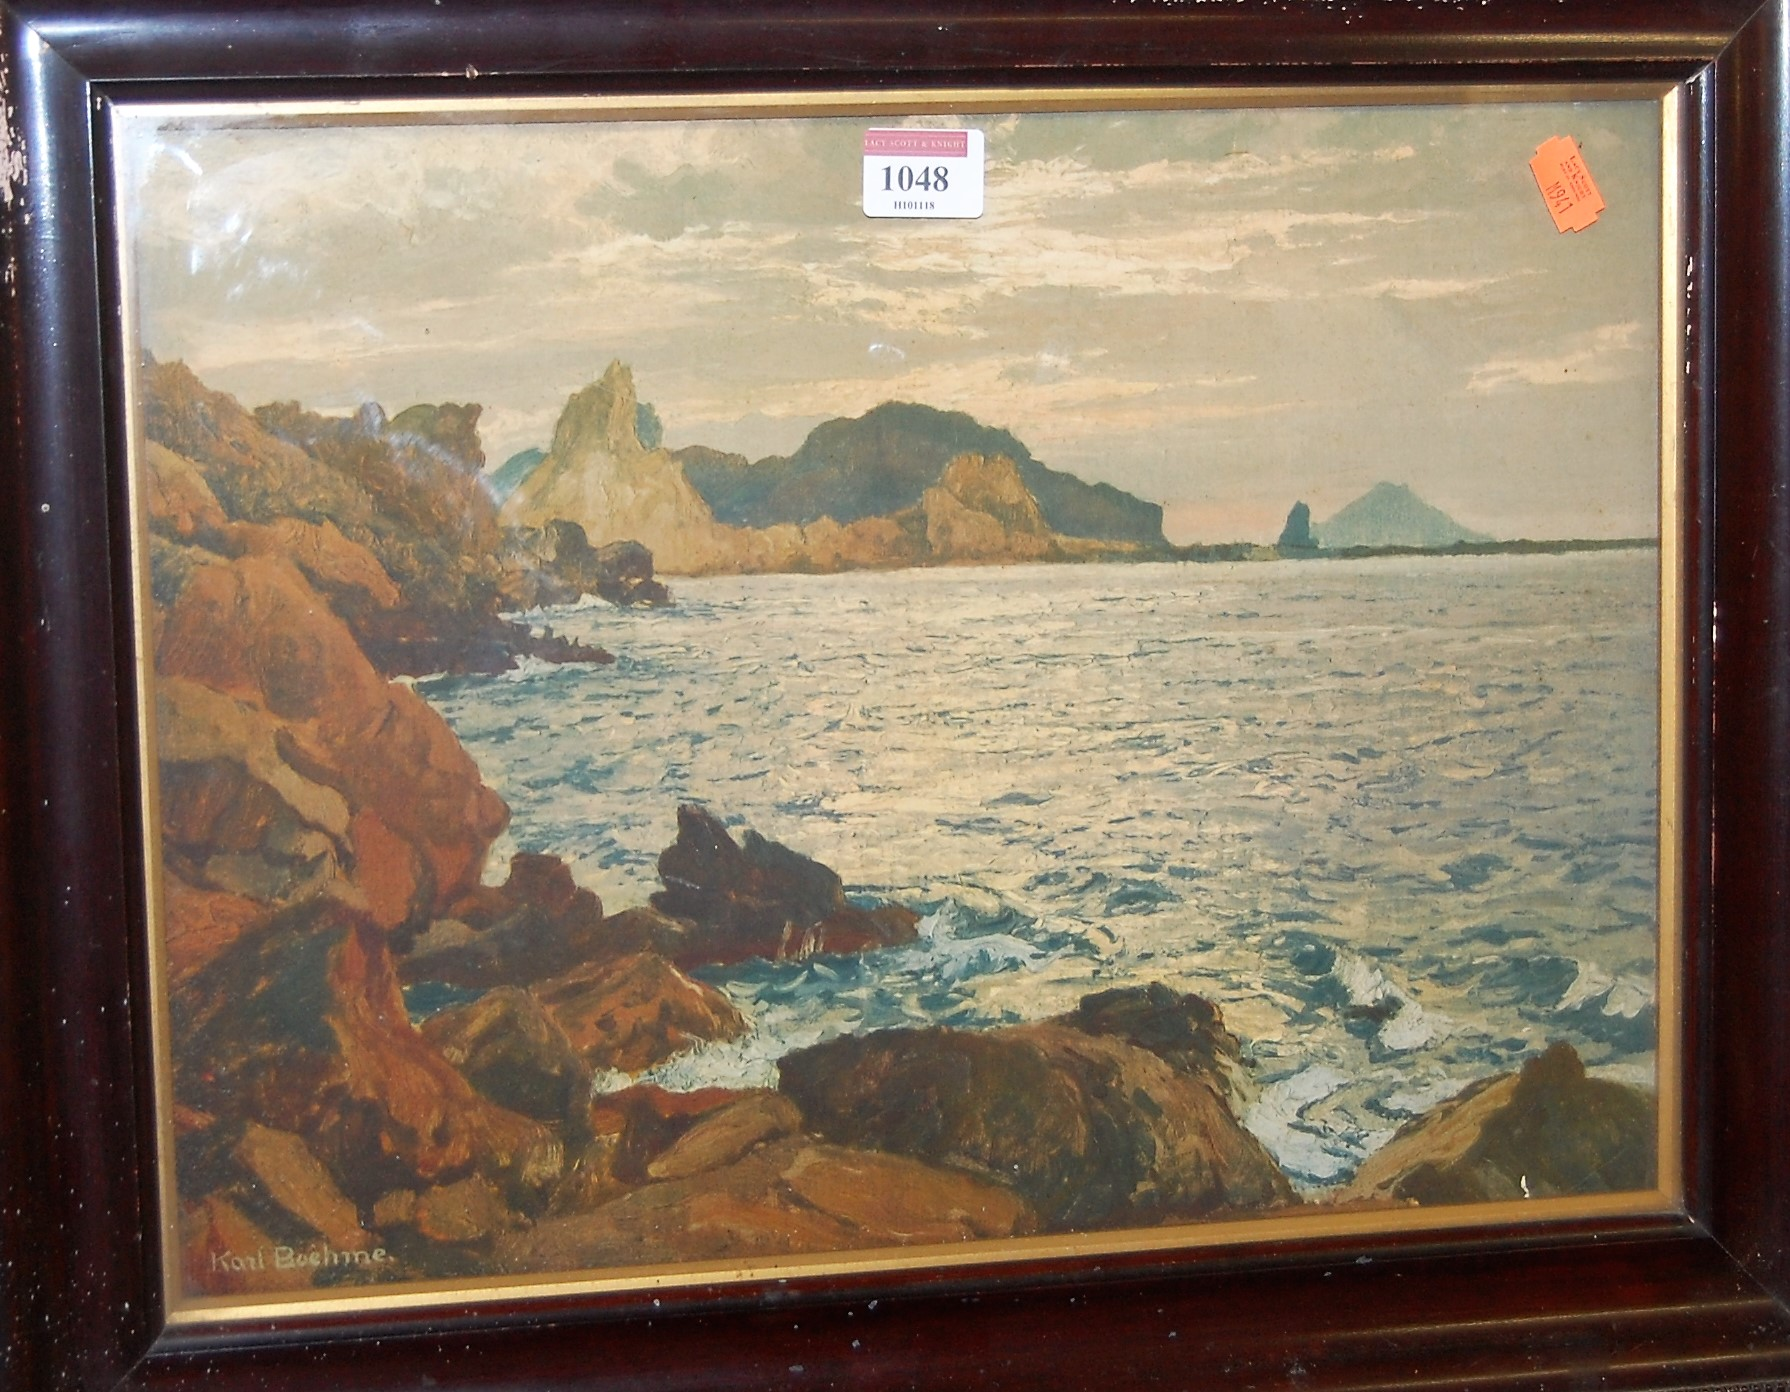 Lot 1048 - Carl Boehme - Coastal scene, print